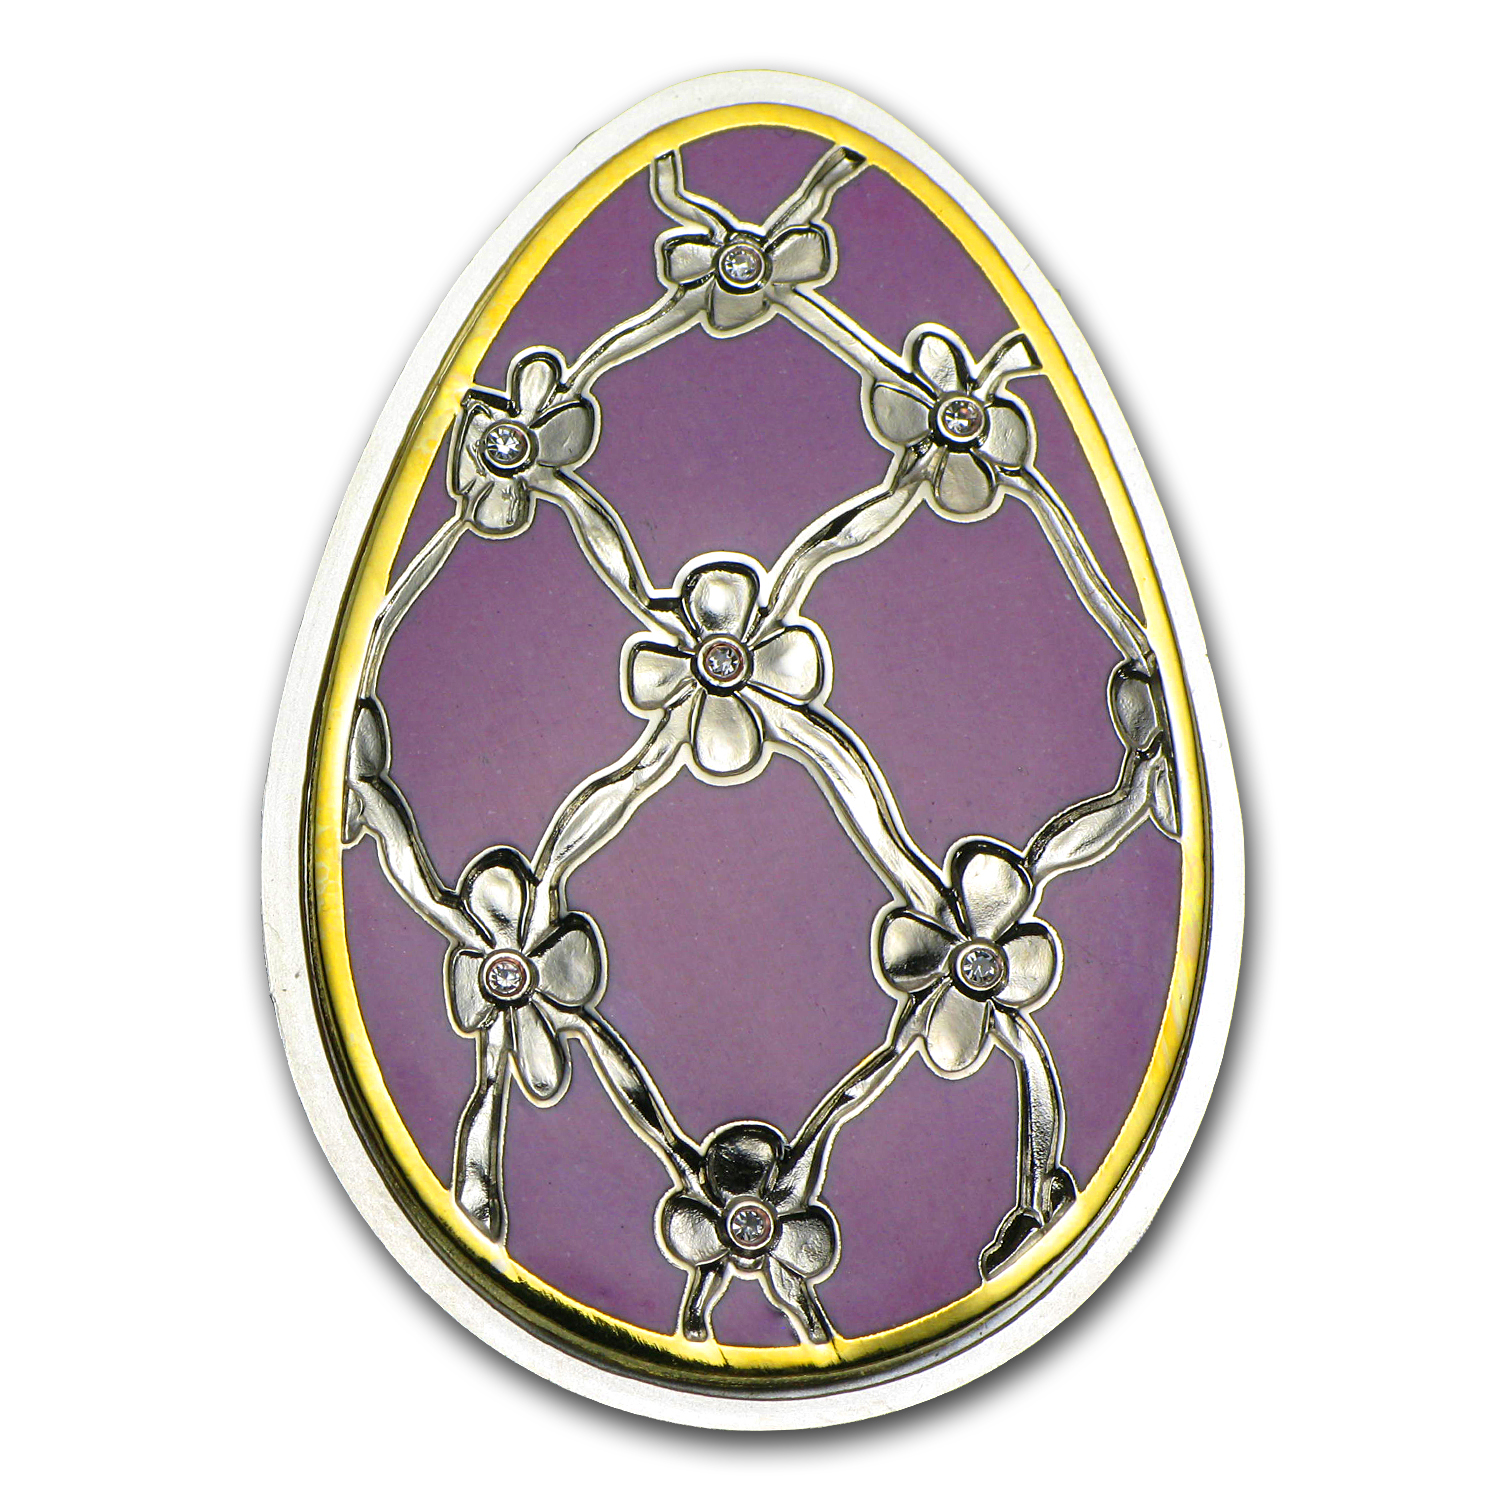 Cook Islands 2012 Proof Silver Imperial Egg in Cloisonné - Violet